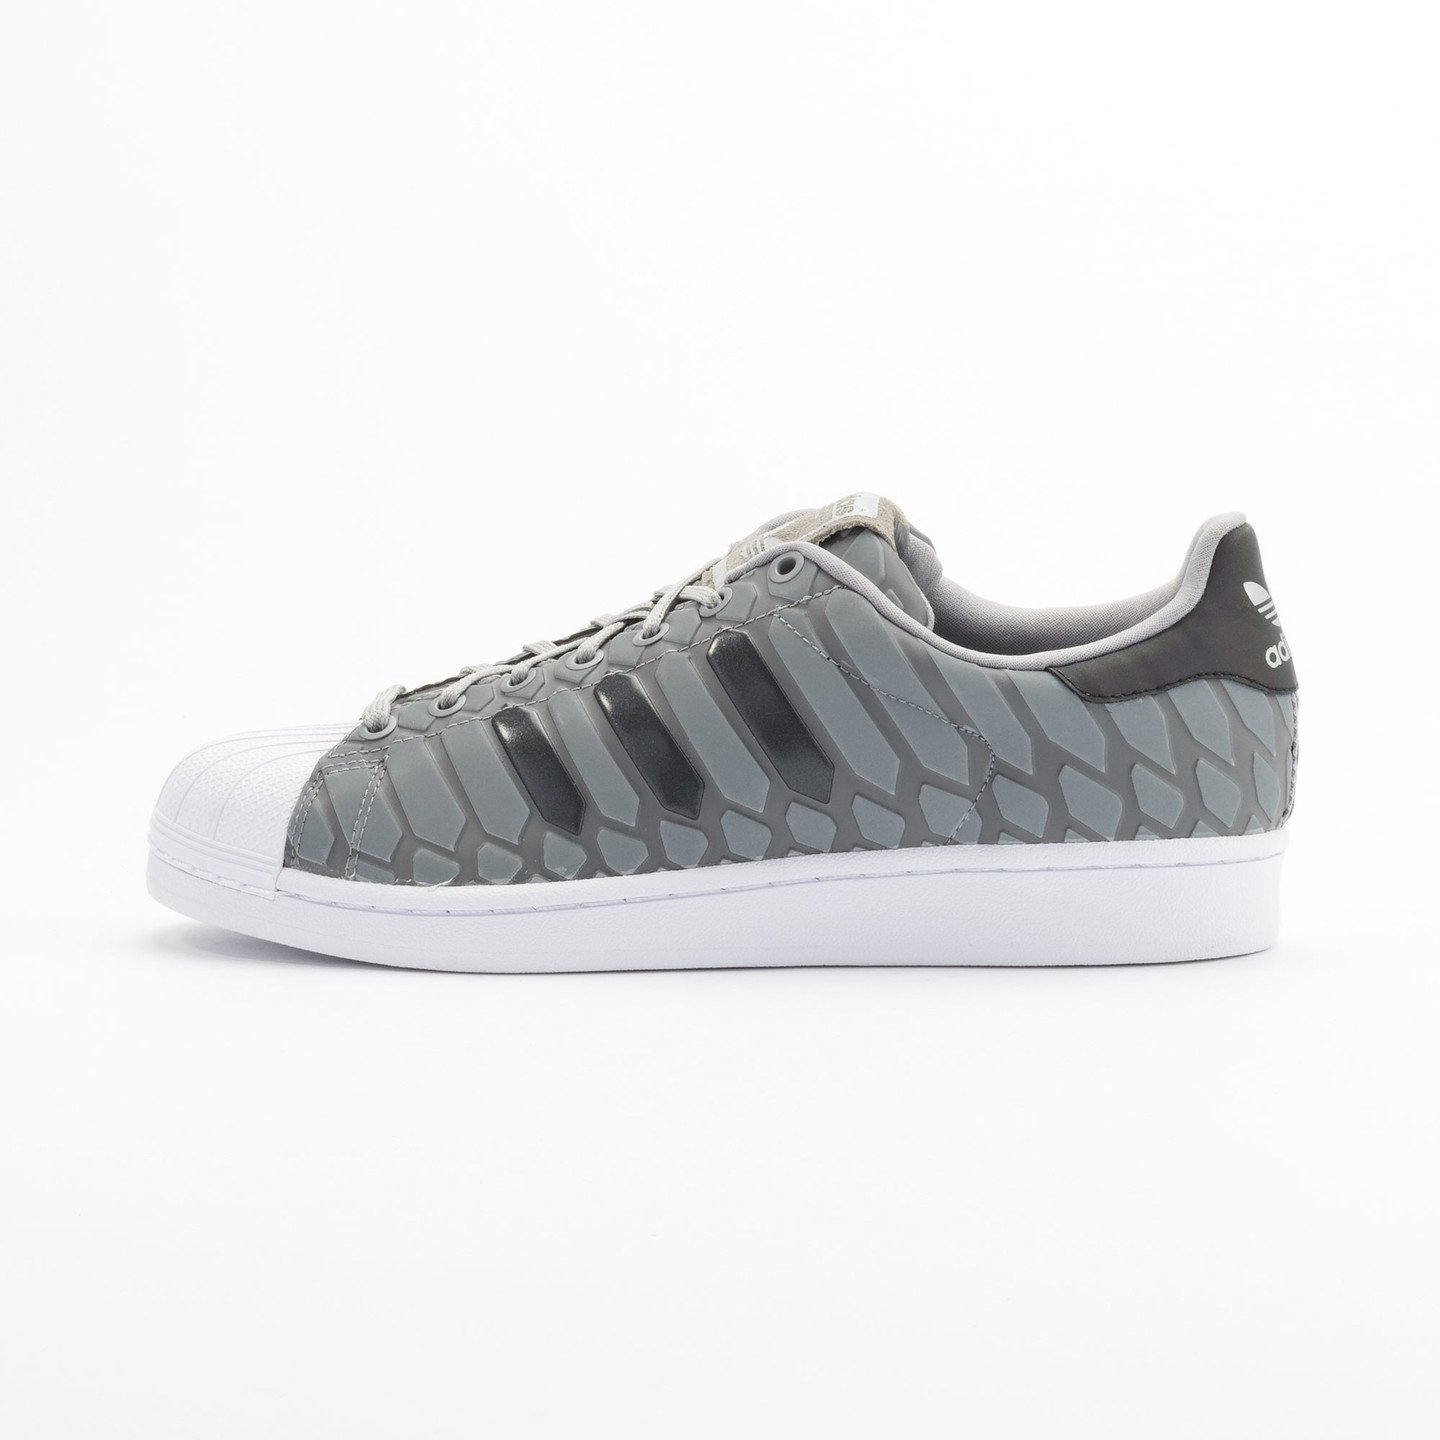 Adidas Superstar Xeno Pack Ltonix / Supcol / Ftwwht D69367-42